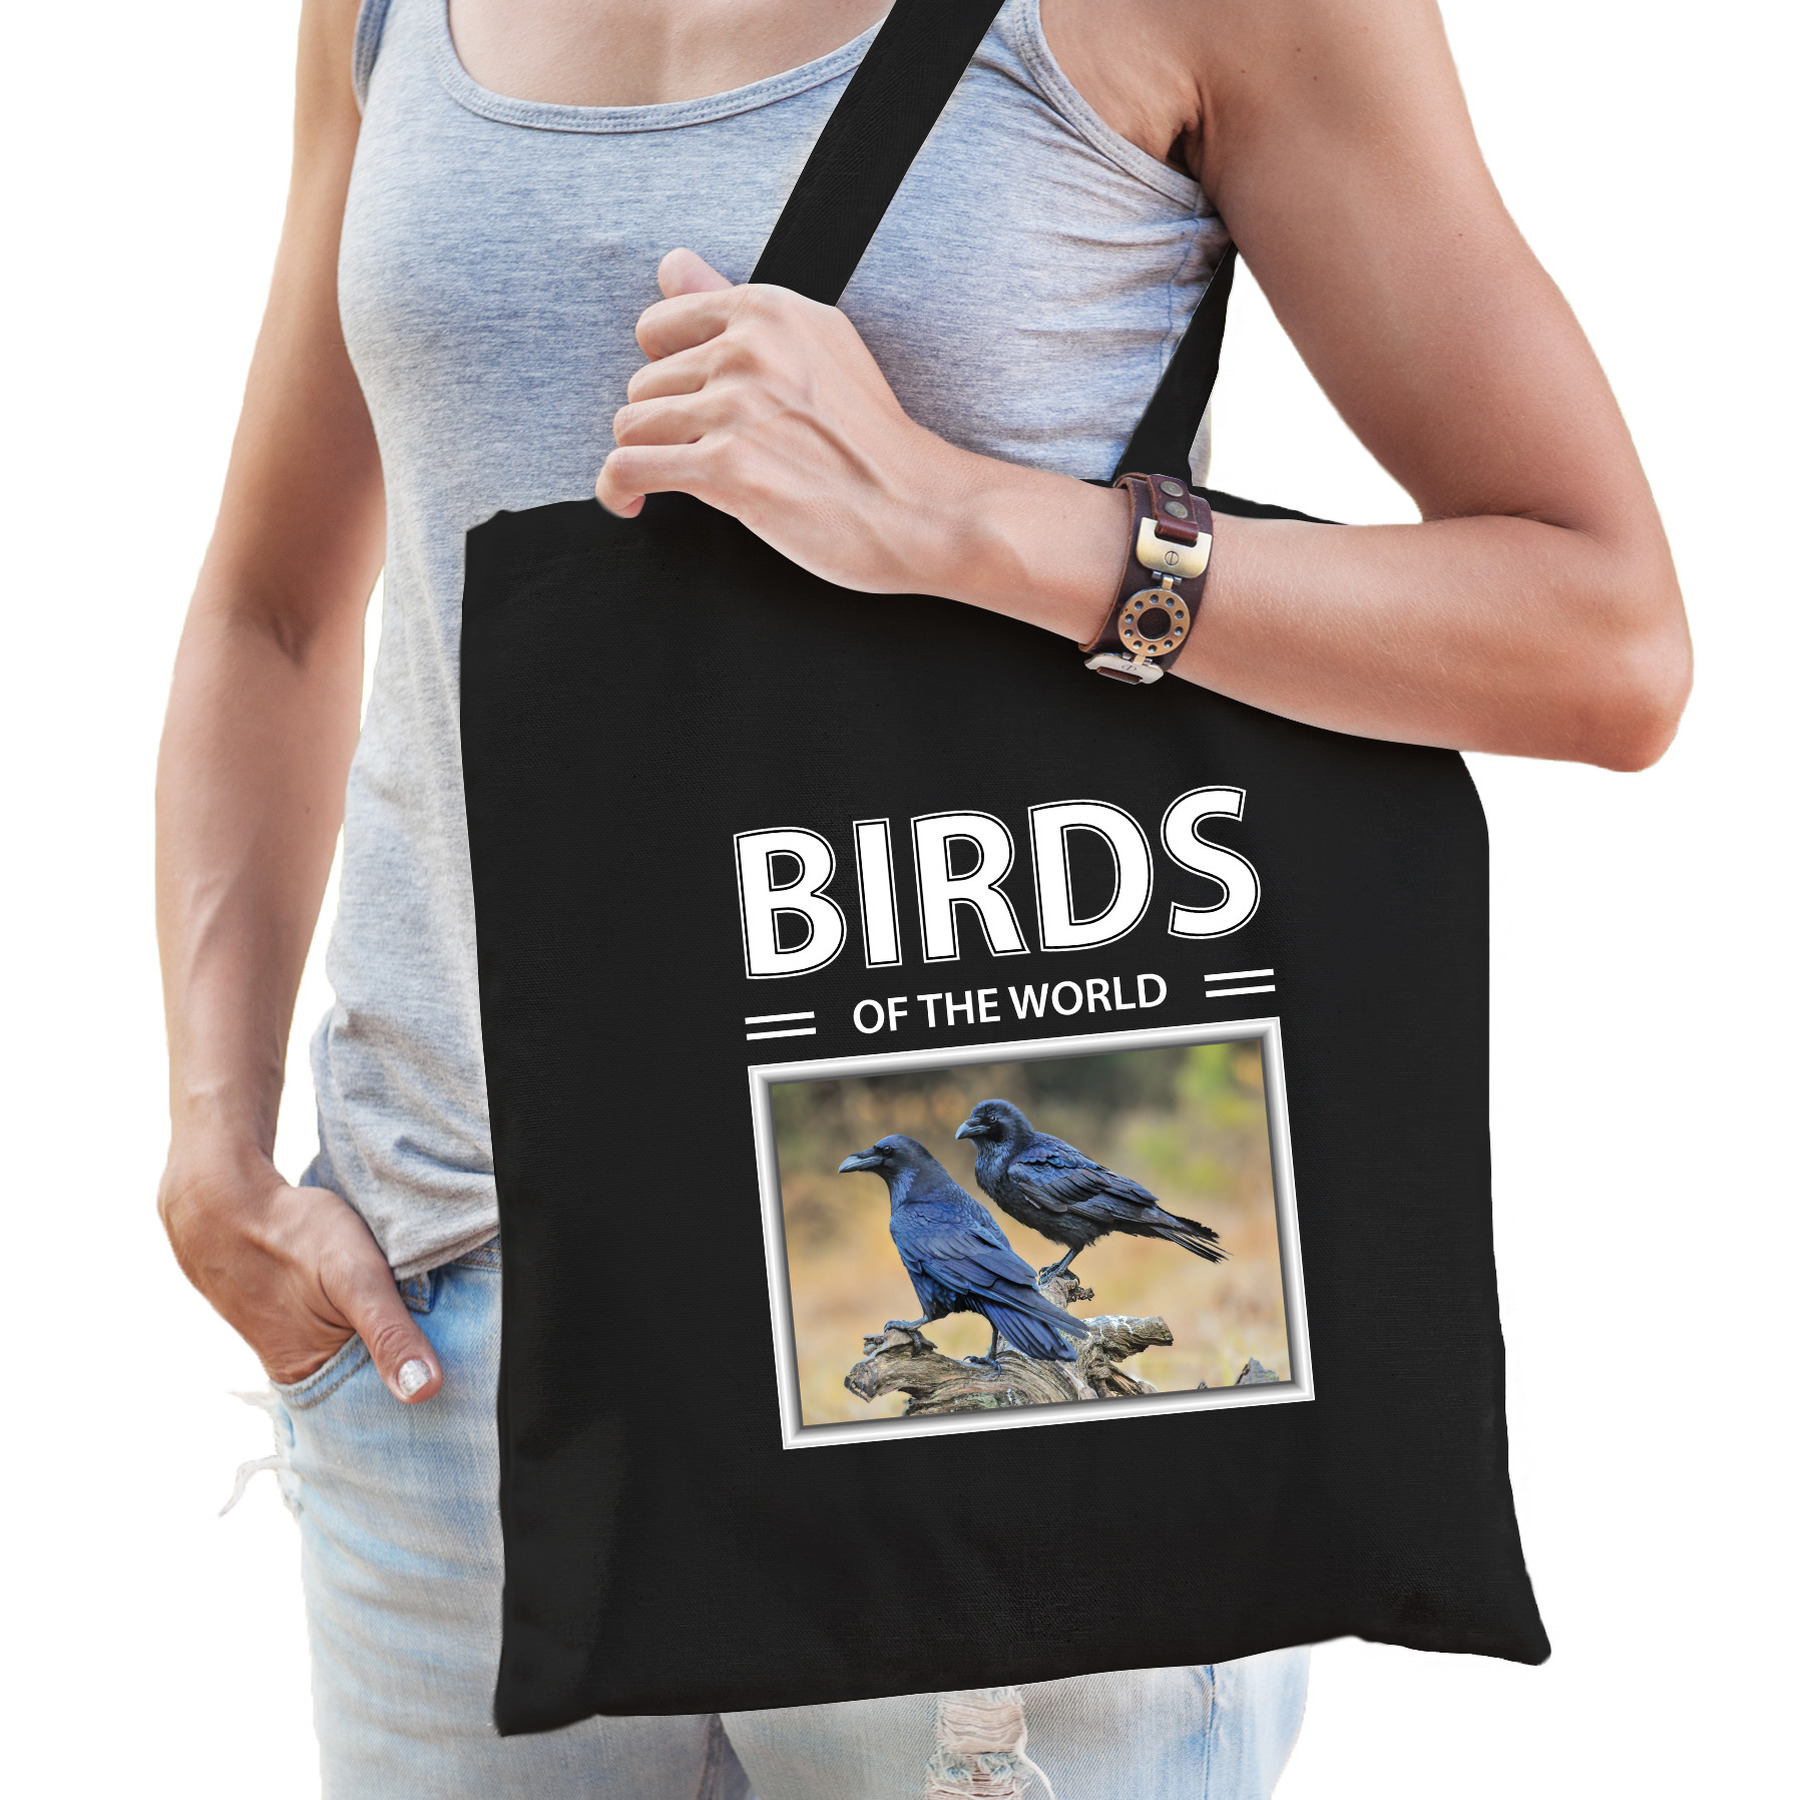 Katoenen tasje Raven vogel zwart - birds of the world Raaf cadeau tas